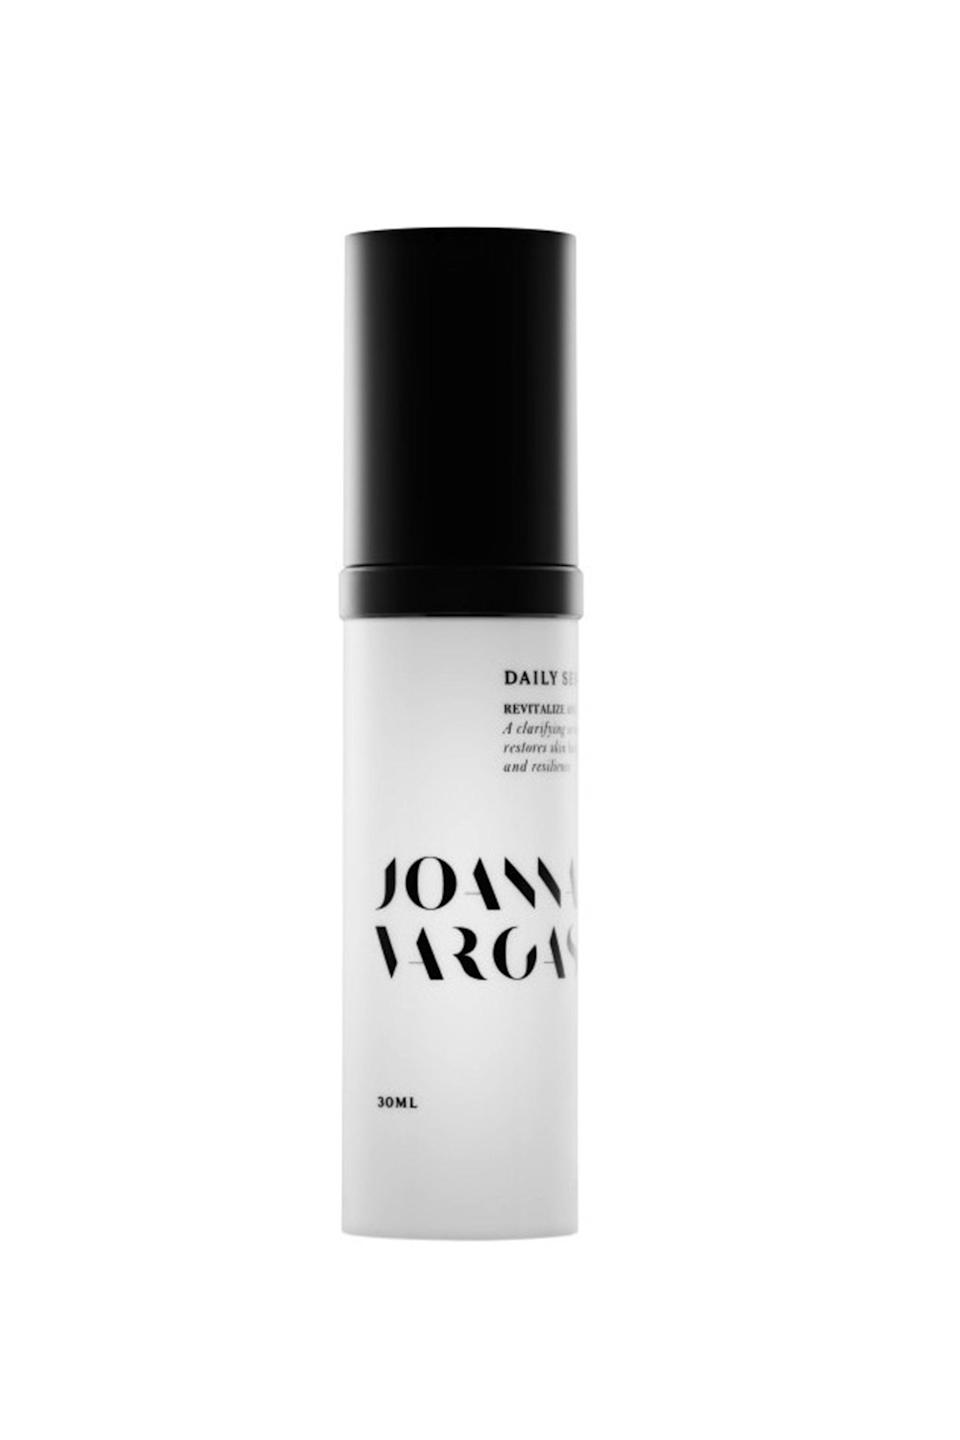 """<p><strong>Joanna Vargas</strong></p><p>net-a-porter.com</p><p><strong>$85.00</strong></p><p><a href=""""https://go.redirectingat.com?id=74968X1596630&url=https%3A%2F%2Fwww.net-a-porter.com%2Fus%2Fen%2Fproduct%2F1056994%3Fcm_mmc%3DGoogle-ProductSearch-US--c-_-NAP_EN_US_PLA-_-NAP%25C2%25A0-%25C2%25A0US%25C2%25A0-%25C2%25A0GS%25C2%25A0-%2BDesigner%2B-%2BClass_Beauty%2B-%2BType_Skincare%25C2%25A0-%25C2%25A0High%25C2%25A0-%25C2%25A0BT--Skincare%2B-%2BSerum_AM%26gclid%3DCj0KCQjwuafdBRDmARIsAPpBmVXdepew8xe0UAtw747KgjN5FP15A1WCY0PP5txlwiFqQGGhRzWRcREaApNKEALw_wcB%26gclsrc%3Daw.ds&sref=https%3A%2F%2Fwww.elle.com%2Fbeauty%2Fmakeup-skin-care%2Ftips%2Fg8091%2Fface-serum%2F"""" rel=""""nofollow noopener"""" target=""""_blank"""" data-ylk=""""slk:Shop Now"""" class=""""link rapid-noclick-resp"""">Shop Now</a></p><p>A favorite among celebrity dermatologist Vargas' clients like Dakota Johnson and Mindy Kaling, this serum is infused with vitamins A, C, E, and F to even natural skin tone and minimize the appearance of pores.</p>"""